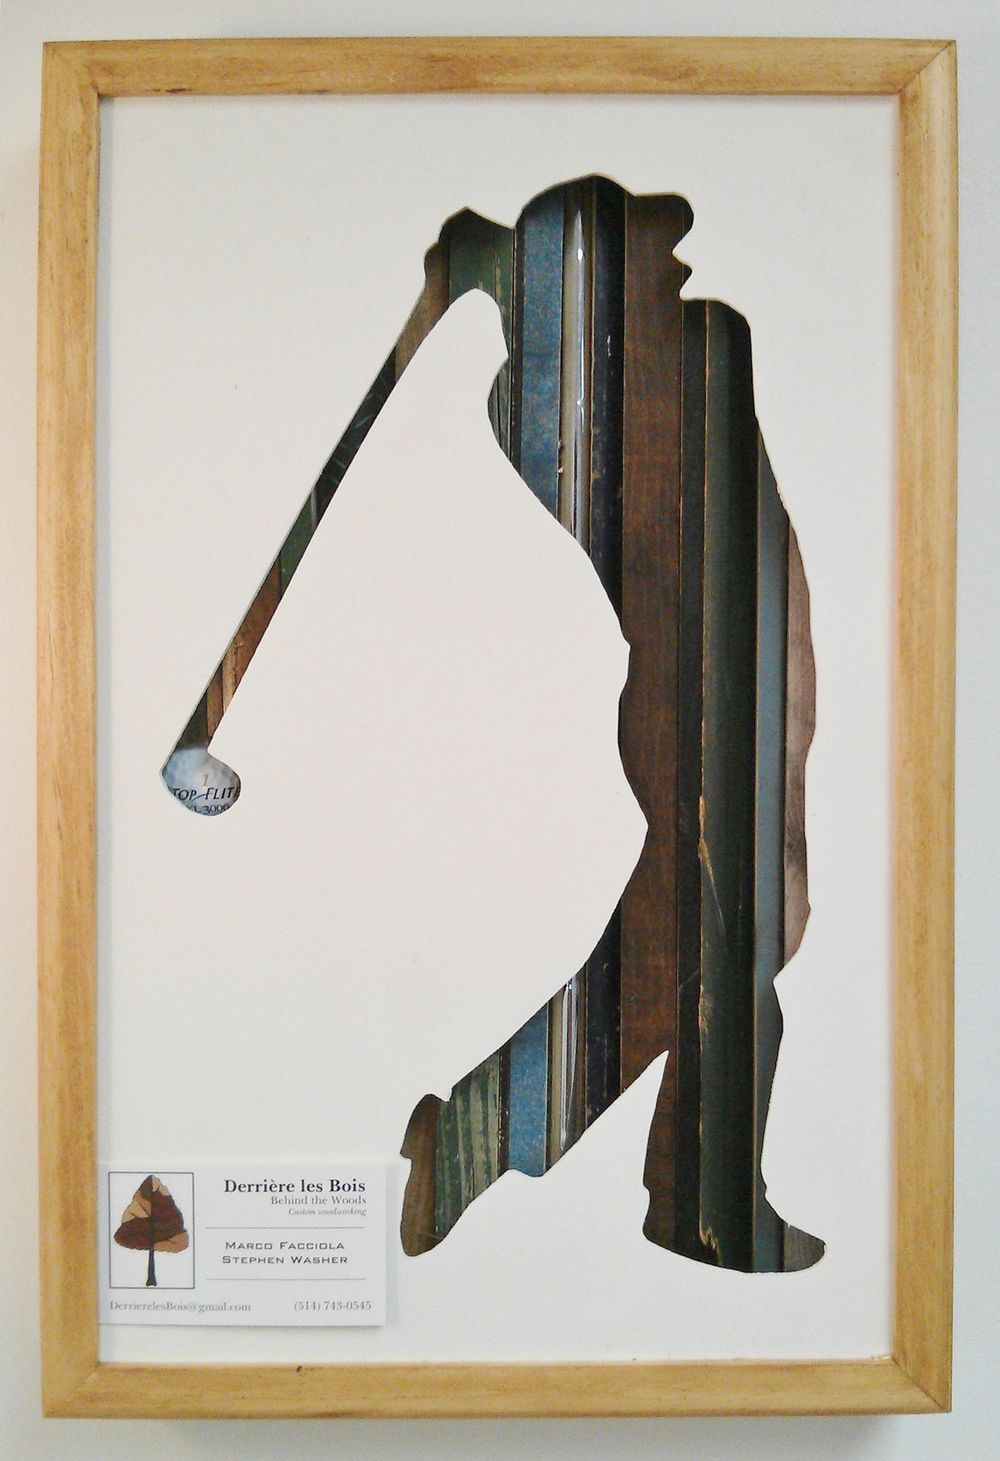 Golfer Wood Art Silhouette With Scrap Wood 17 By 11 Ttb